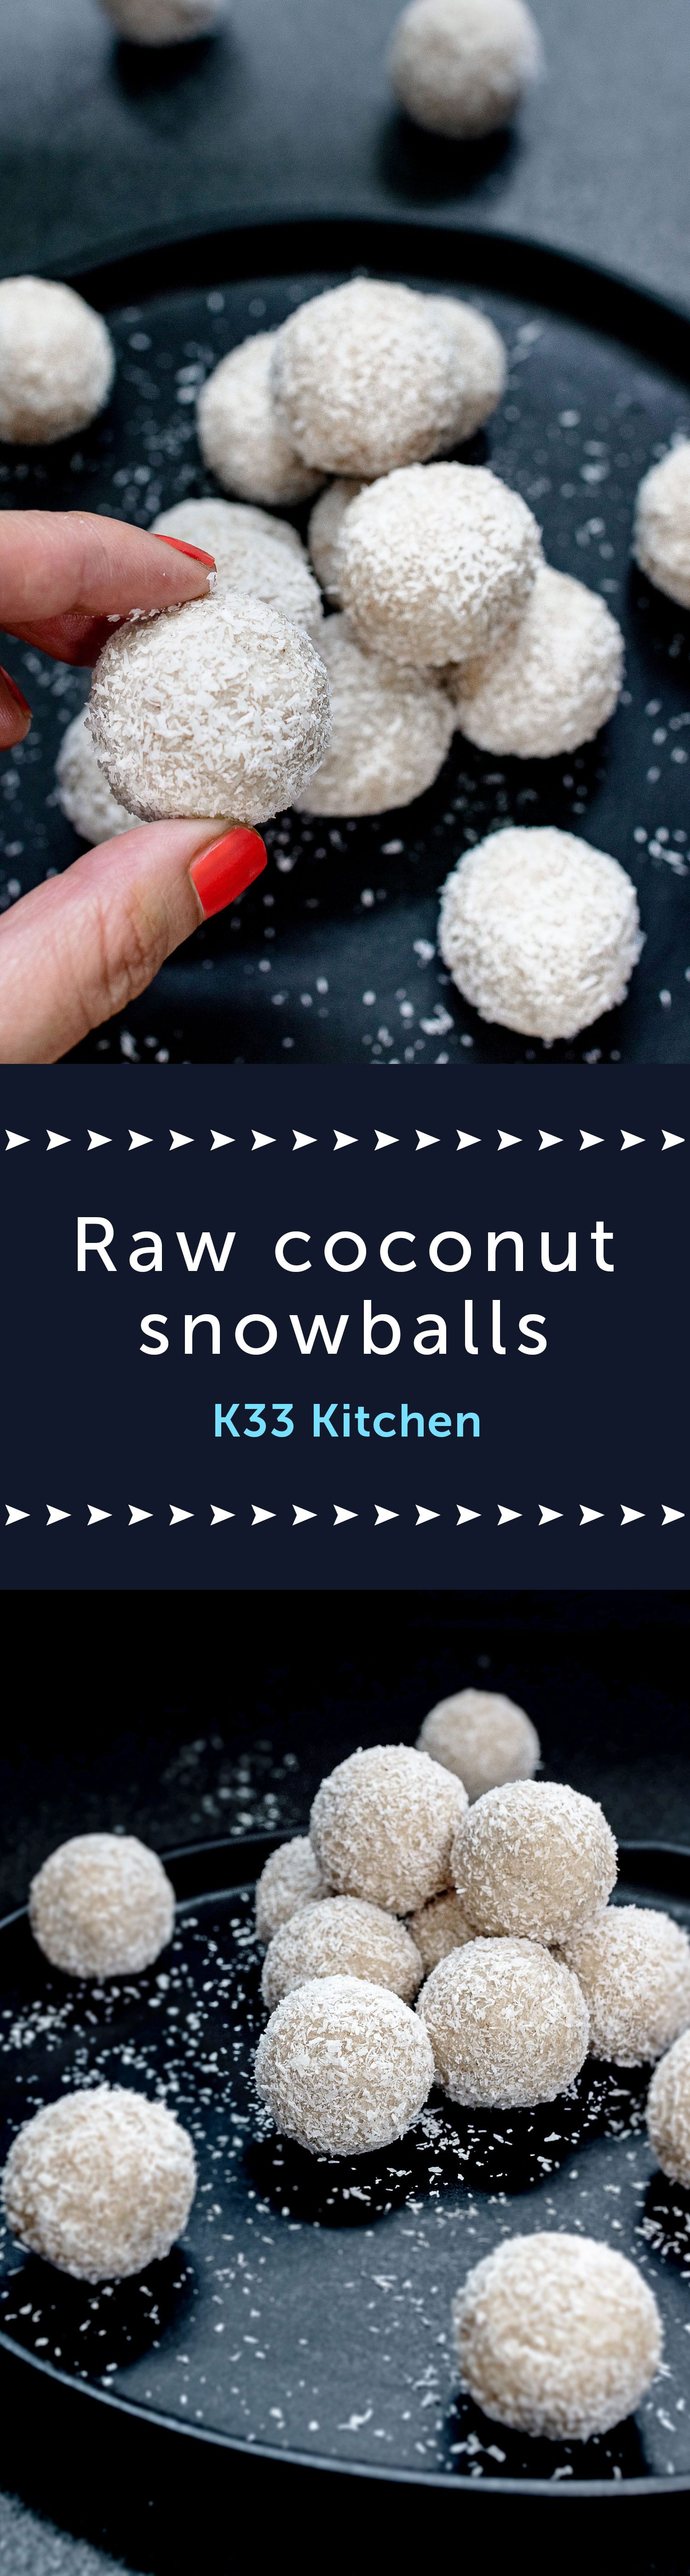 Raw coconut snowballs